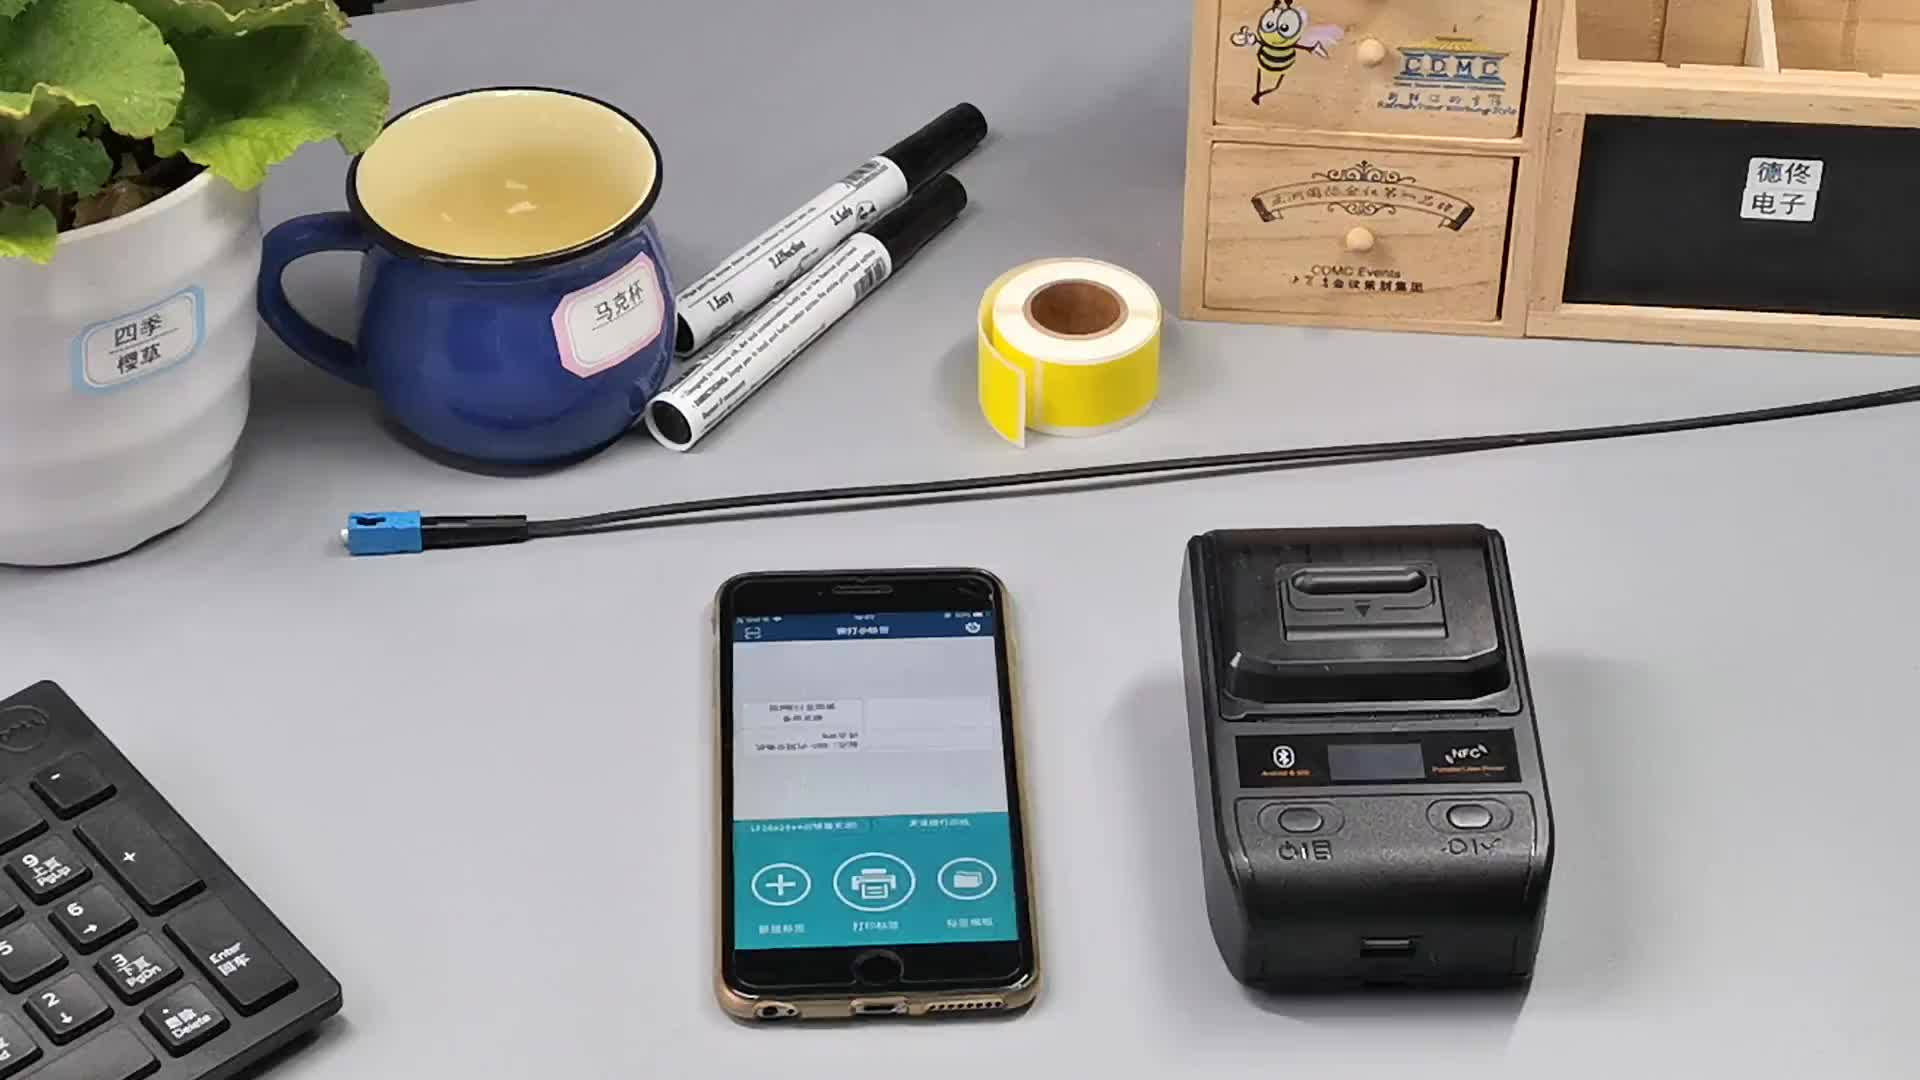 DeTonger-DP23S barcode qr code sticker label cable ID labeling printer android cable marking printer